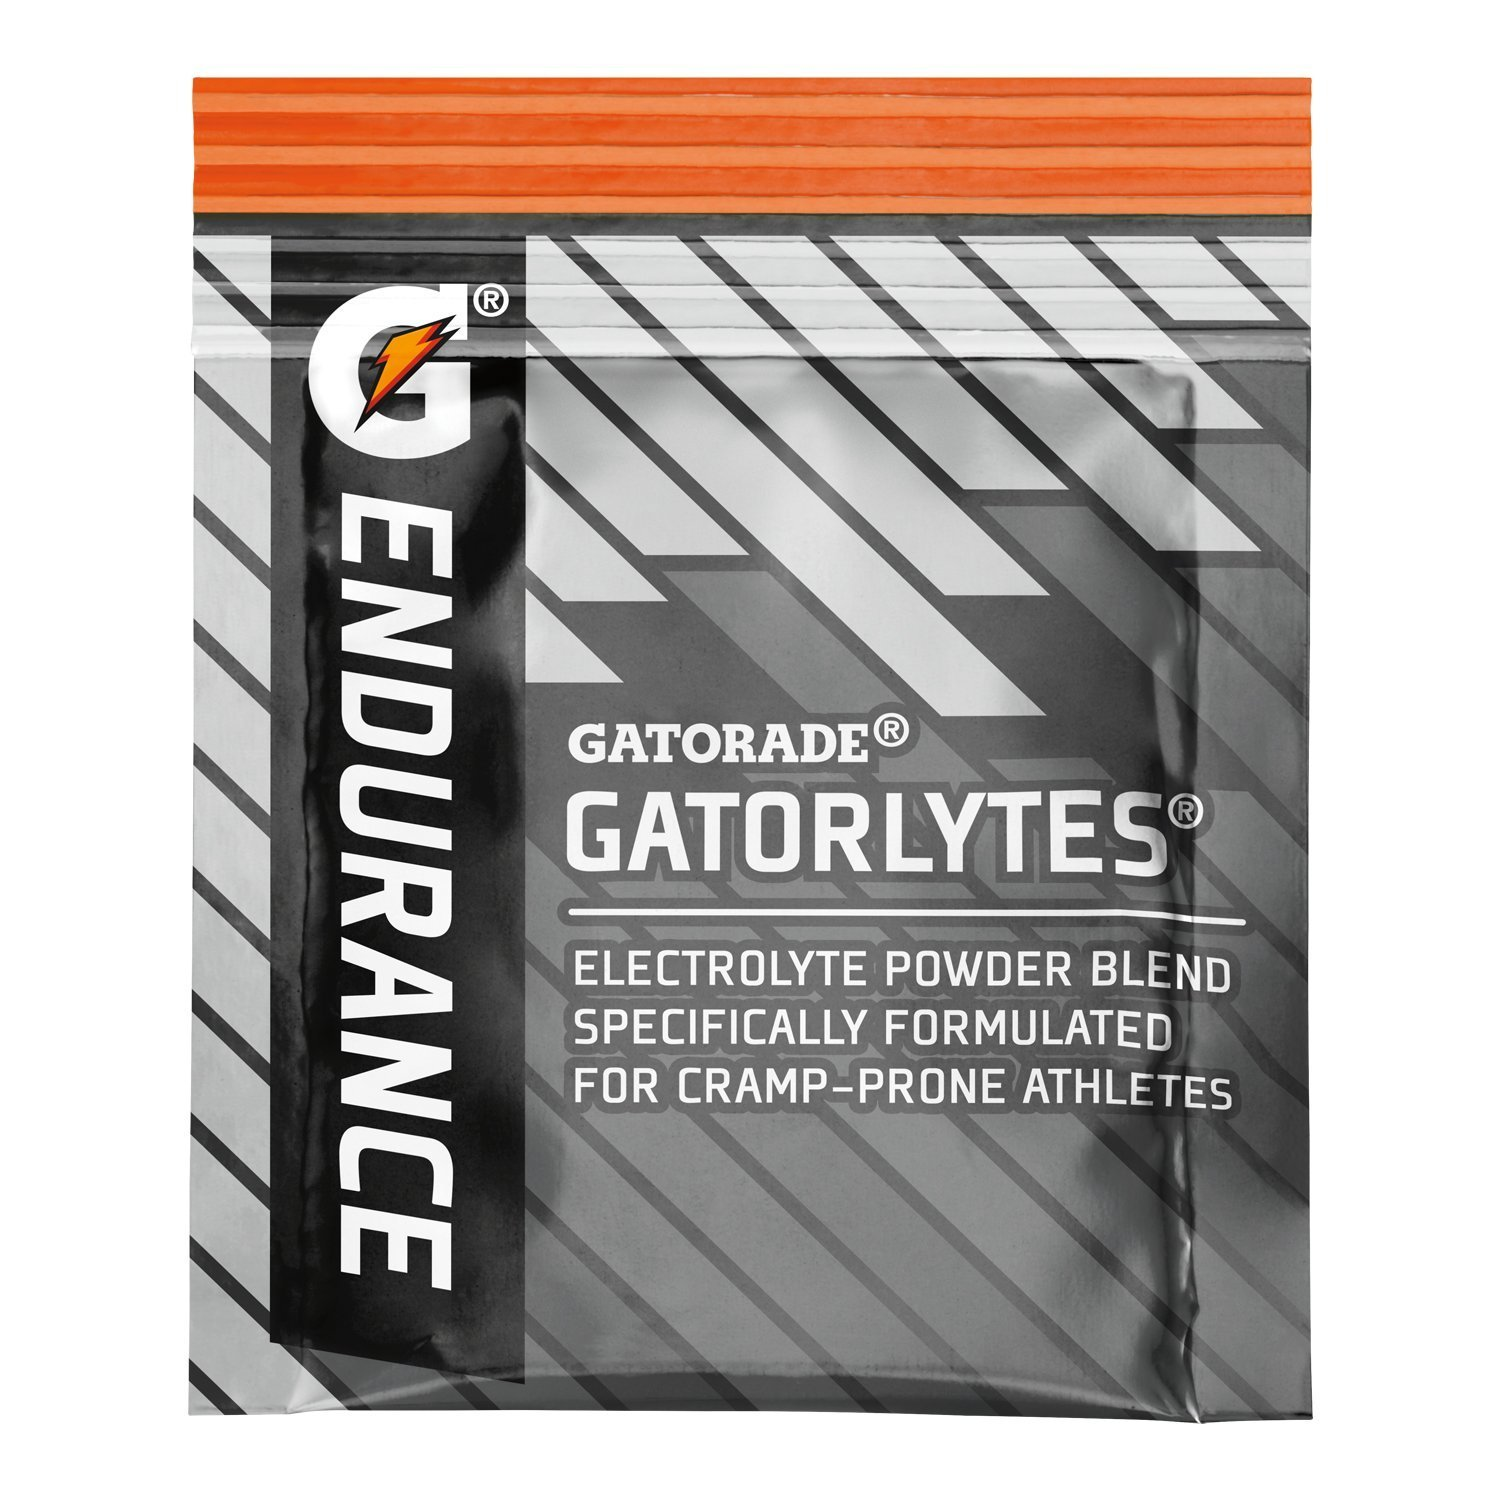 Gatorade Endurance Gatorlytes, 0.12 Ounces TEAM Pack (Pack of 100) w/Complimentary Trial of Tailwind Endurance Fuel